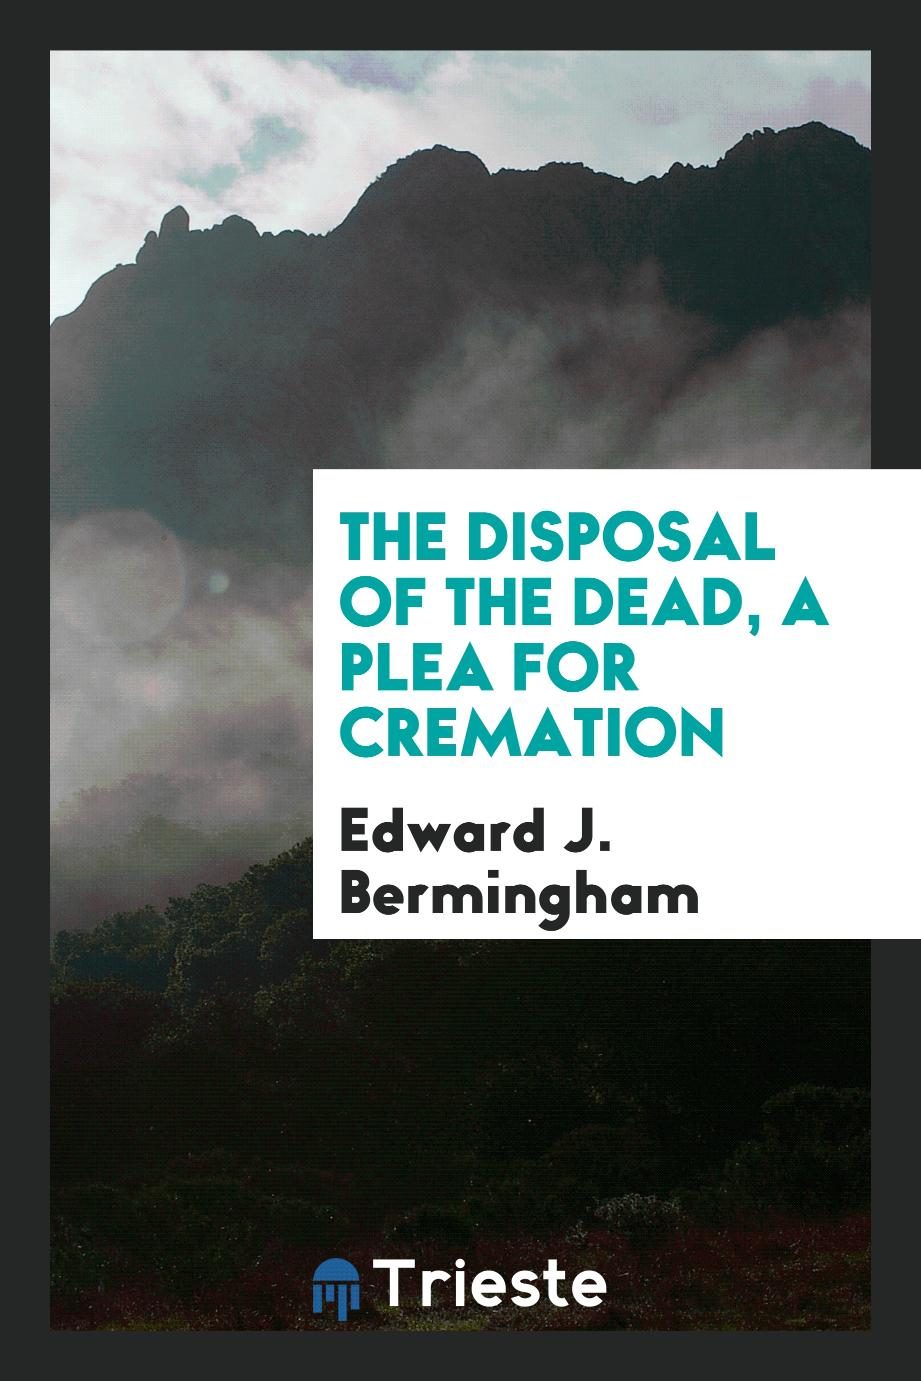 The Disposal of the dead, a plea for cremation